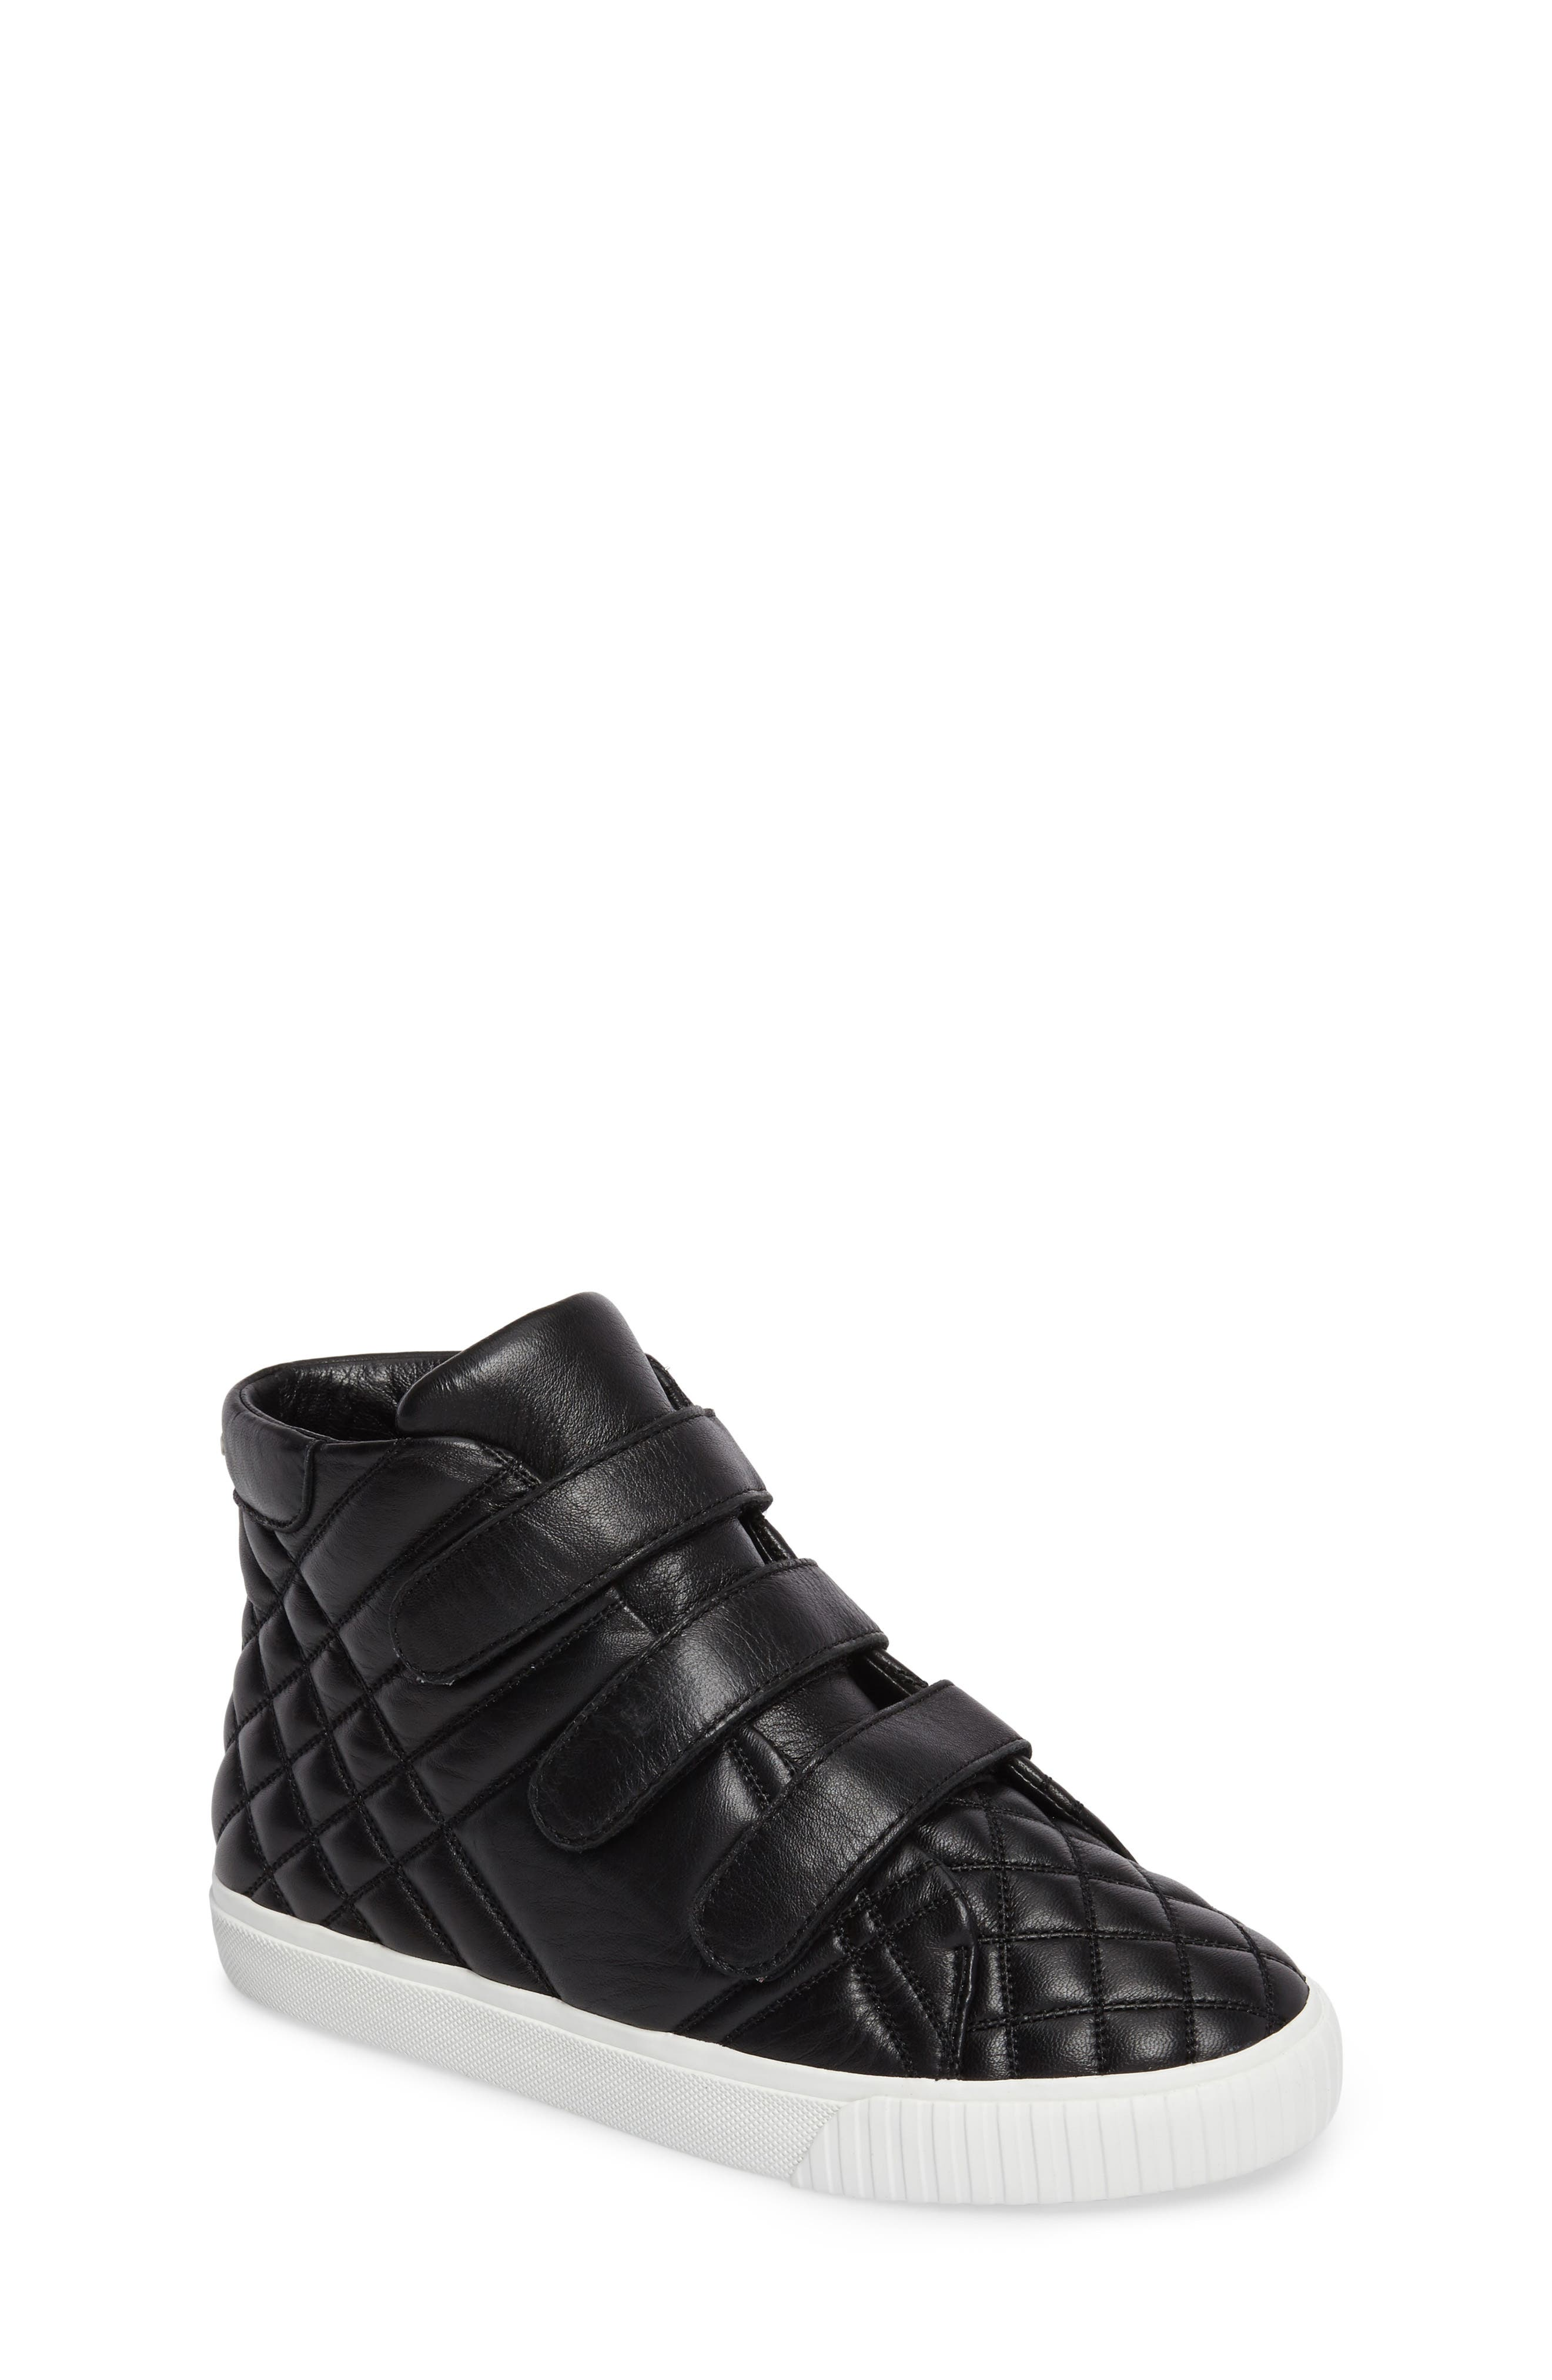 Burberry Sturrock Quilted High Top Sneaker (Walker, Toddler, Little Kid & Big Kid)